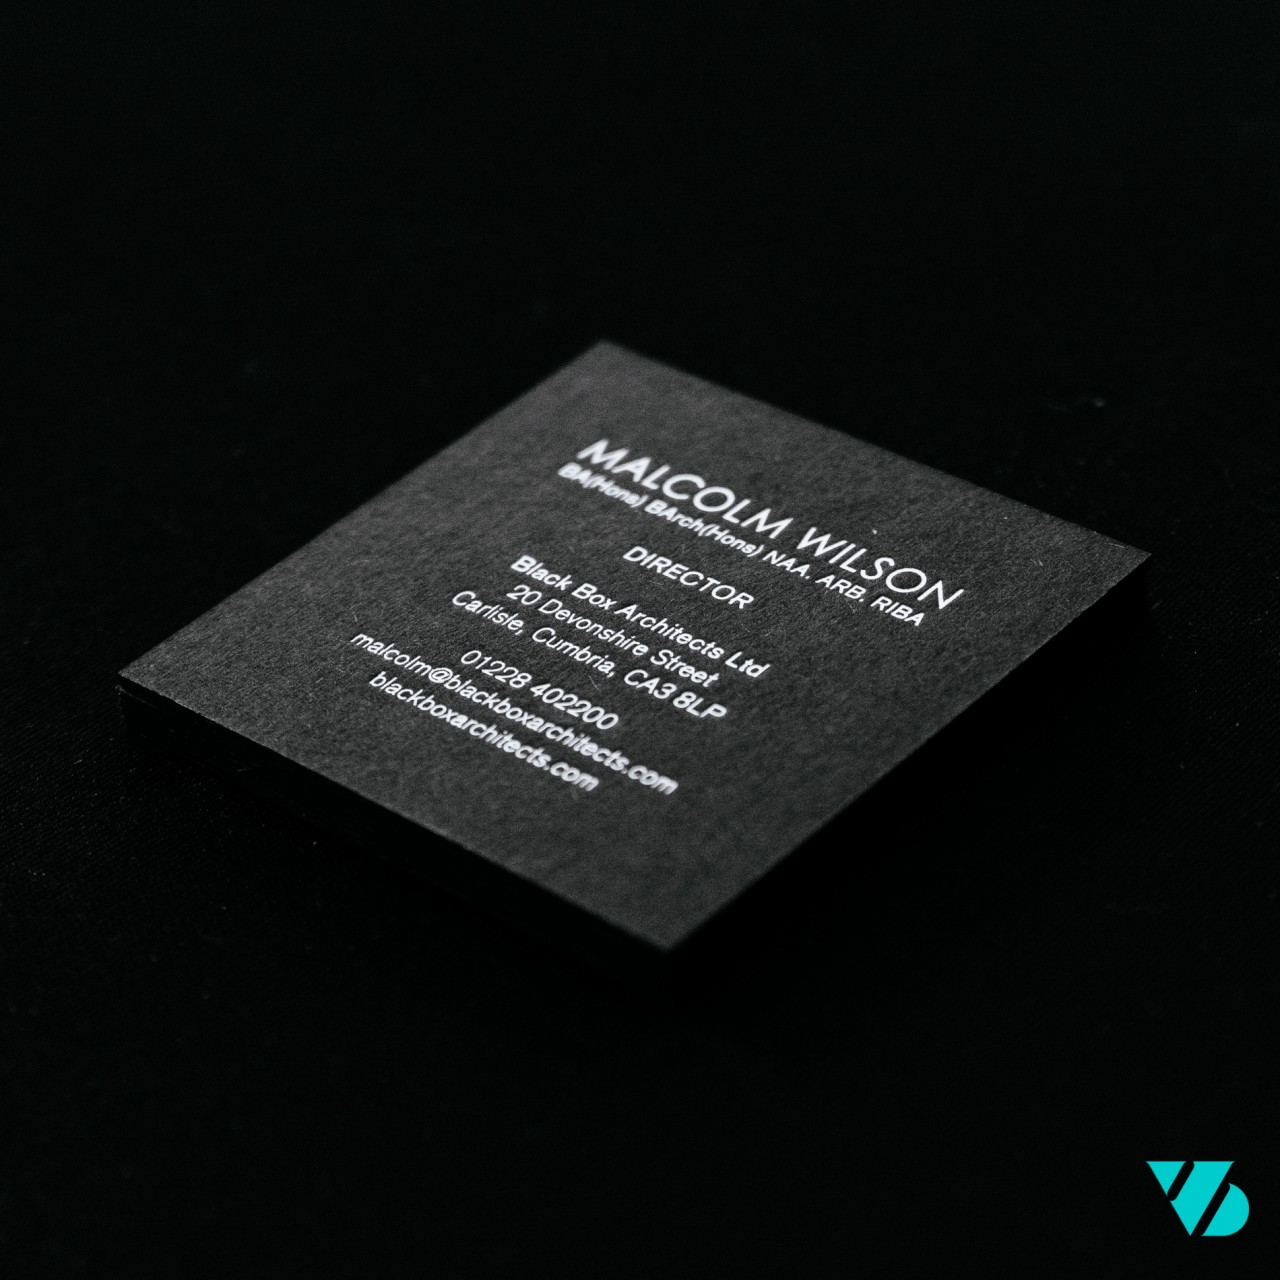 Blackbox business card